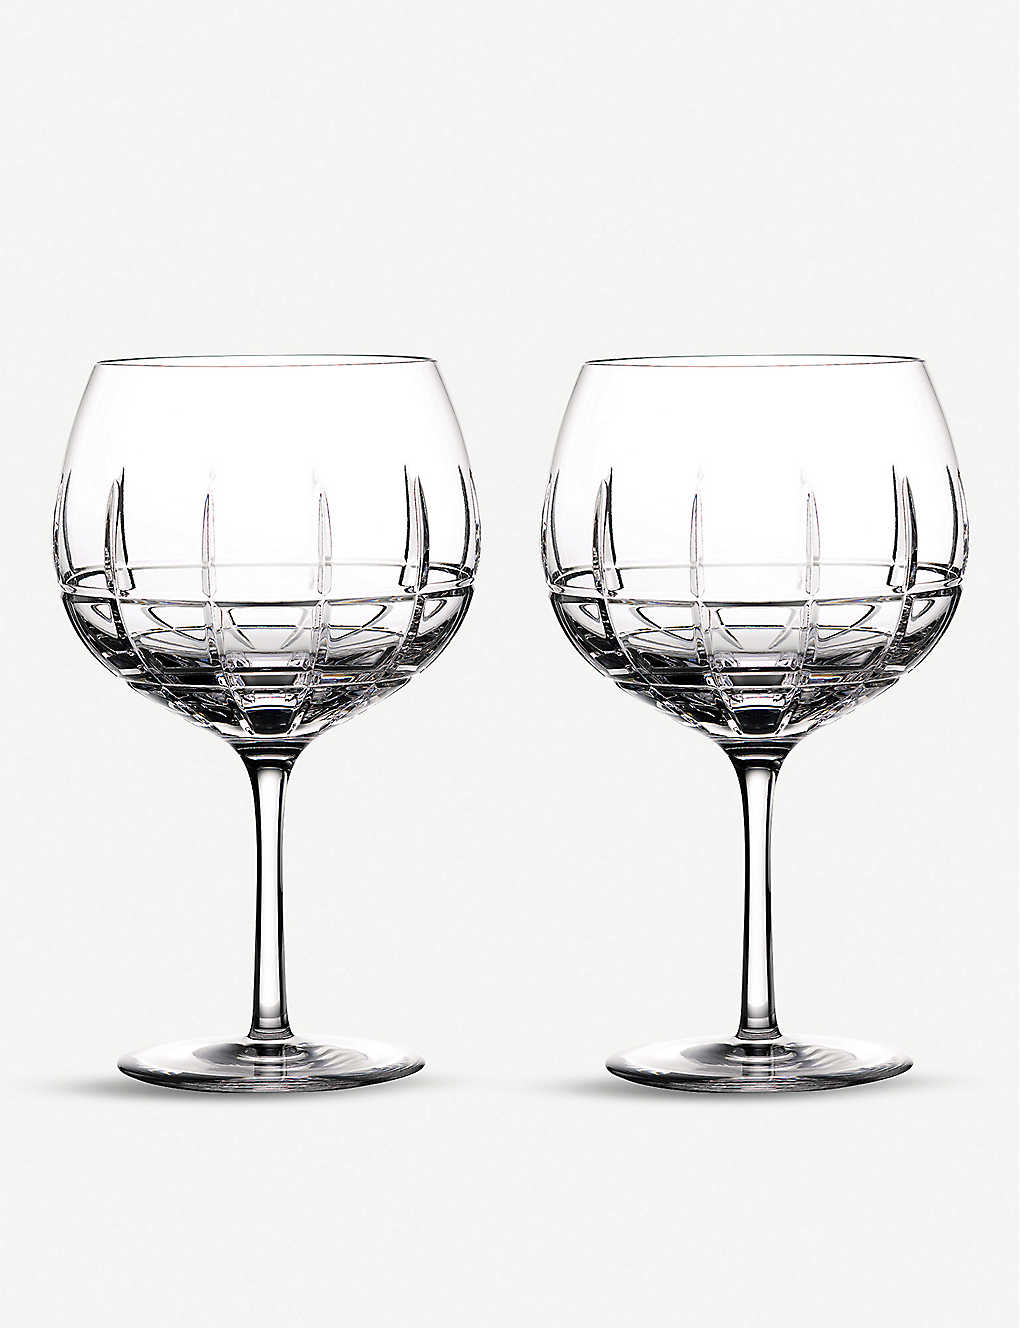 WATERFORD: Gin Journey Cluin Balloon glasses set of two